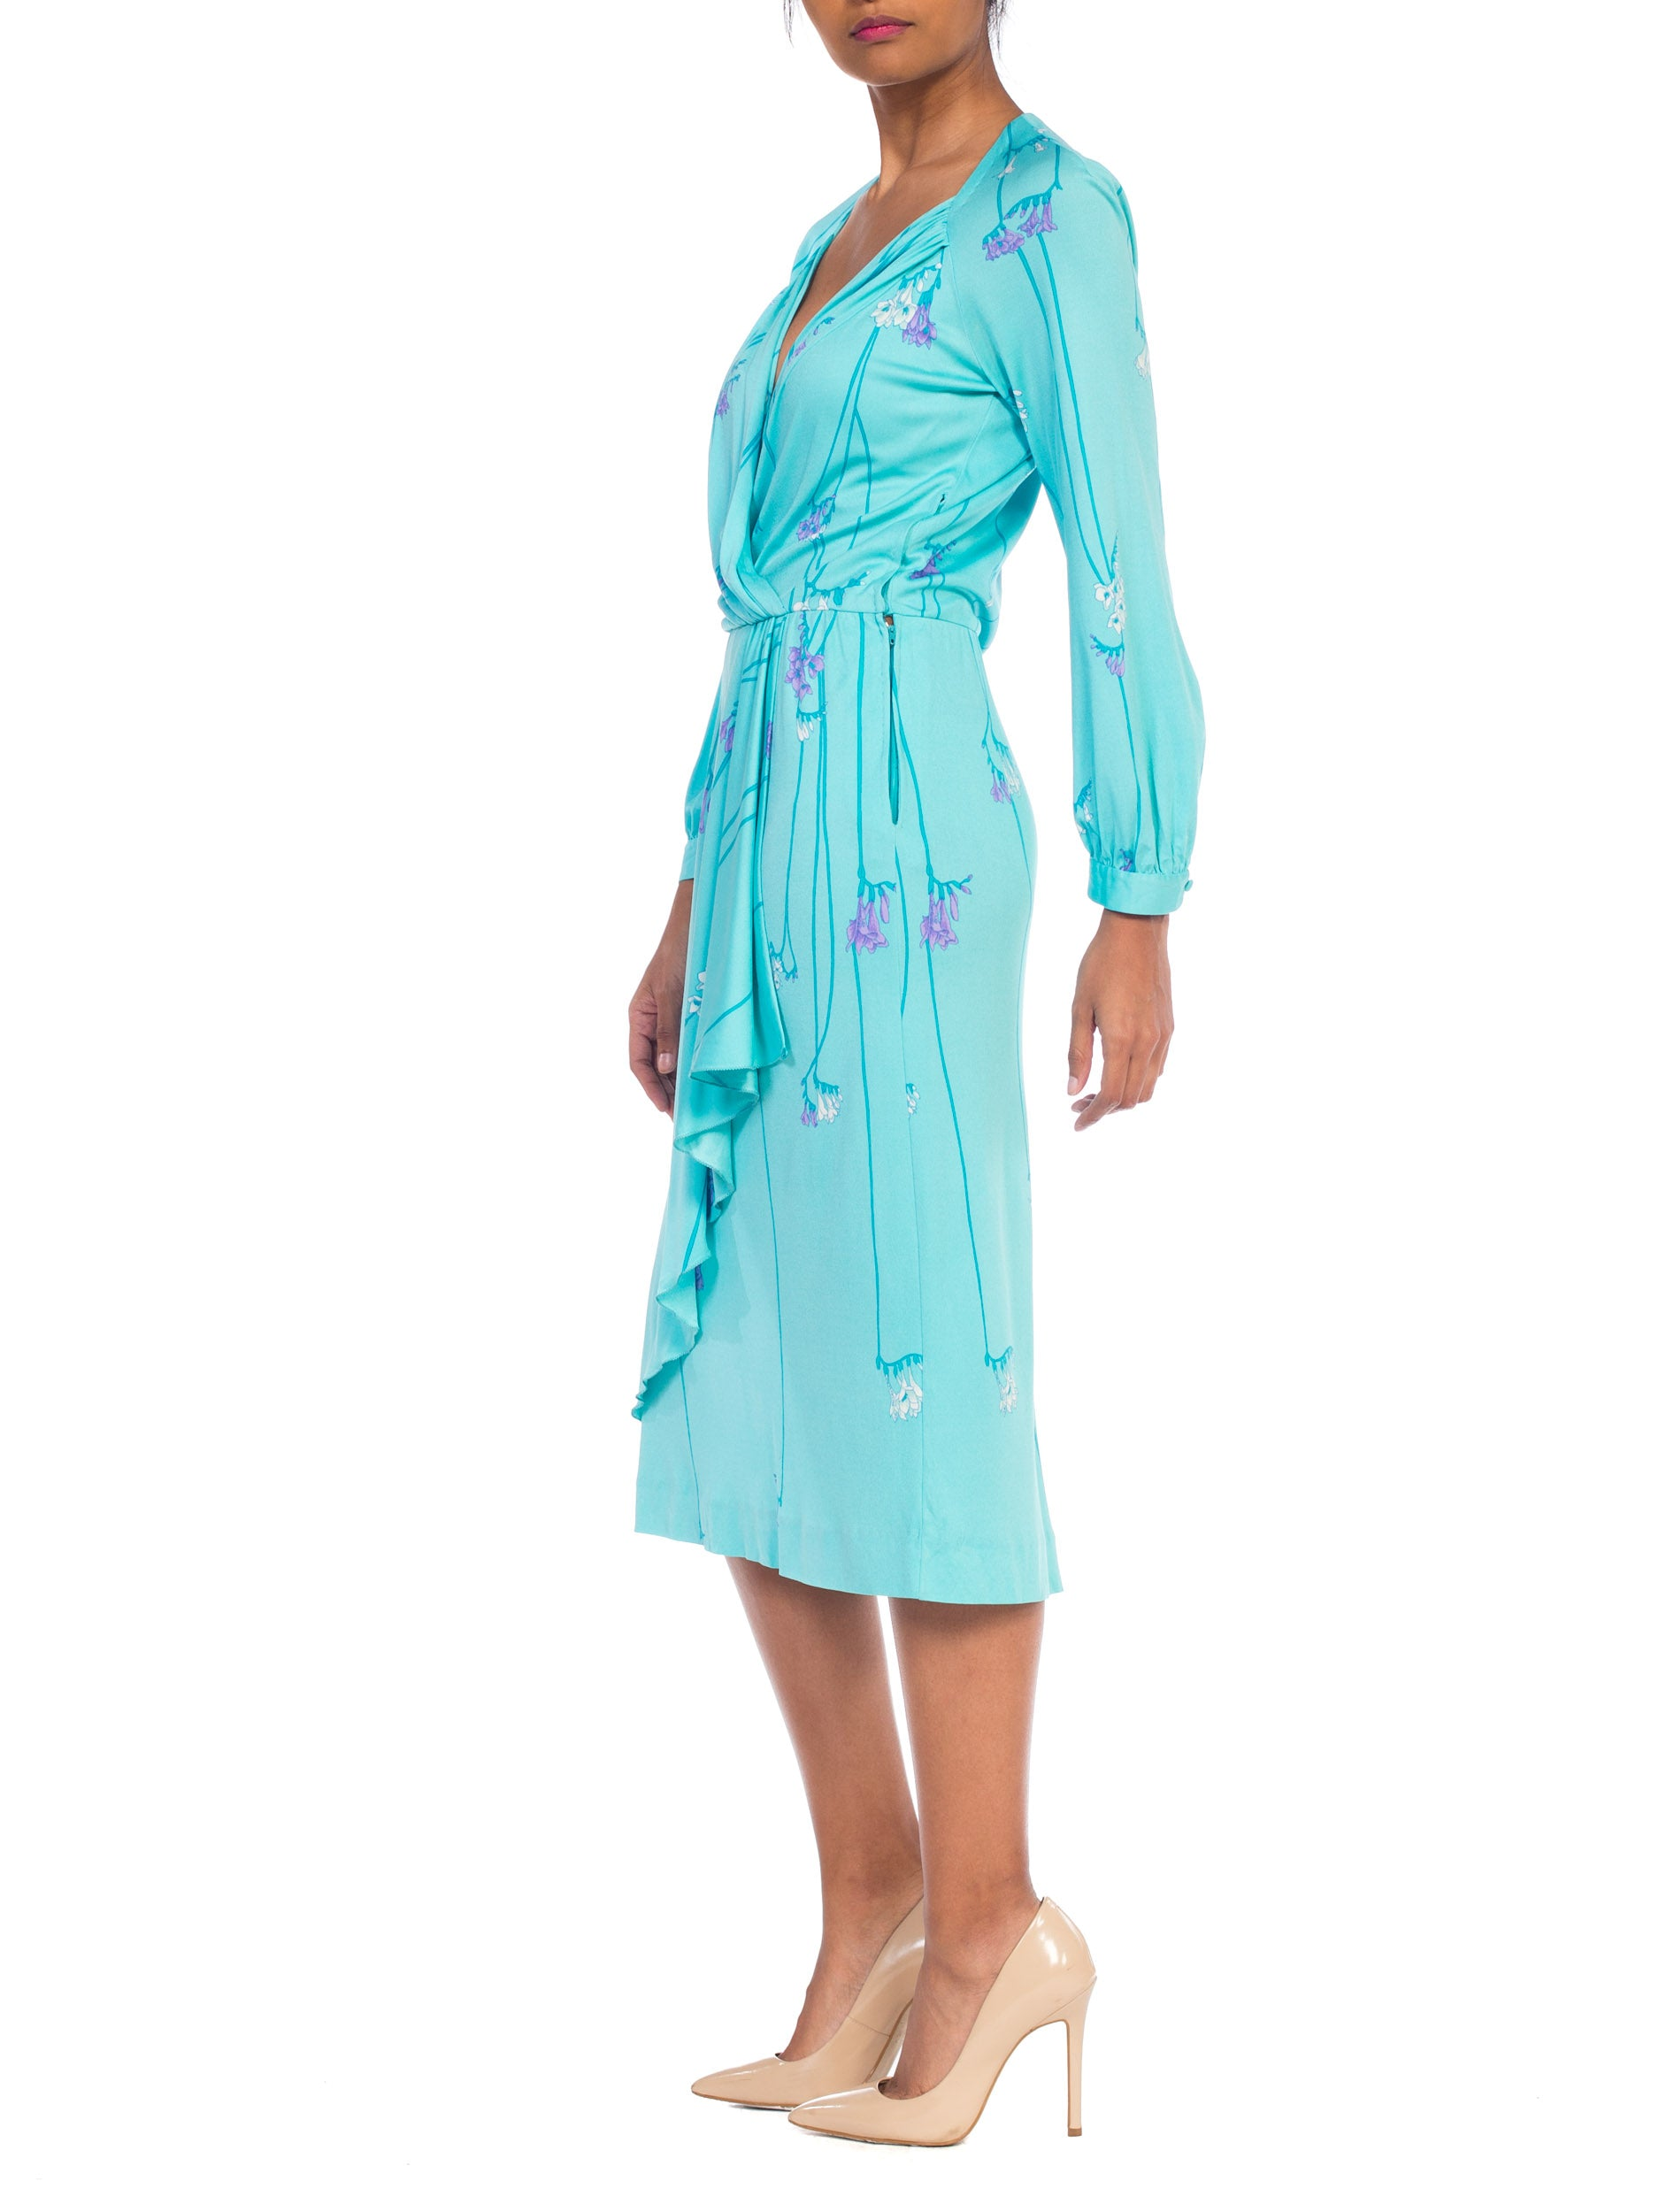 1970S De Parisini Aqua  Blue Silk Jersey Floral Dress Made In Italy